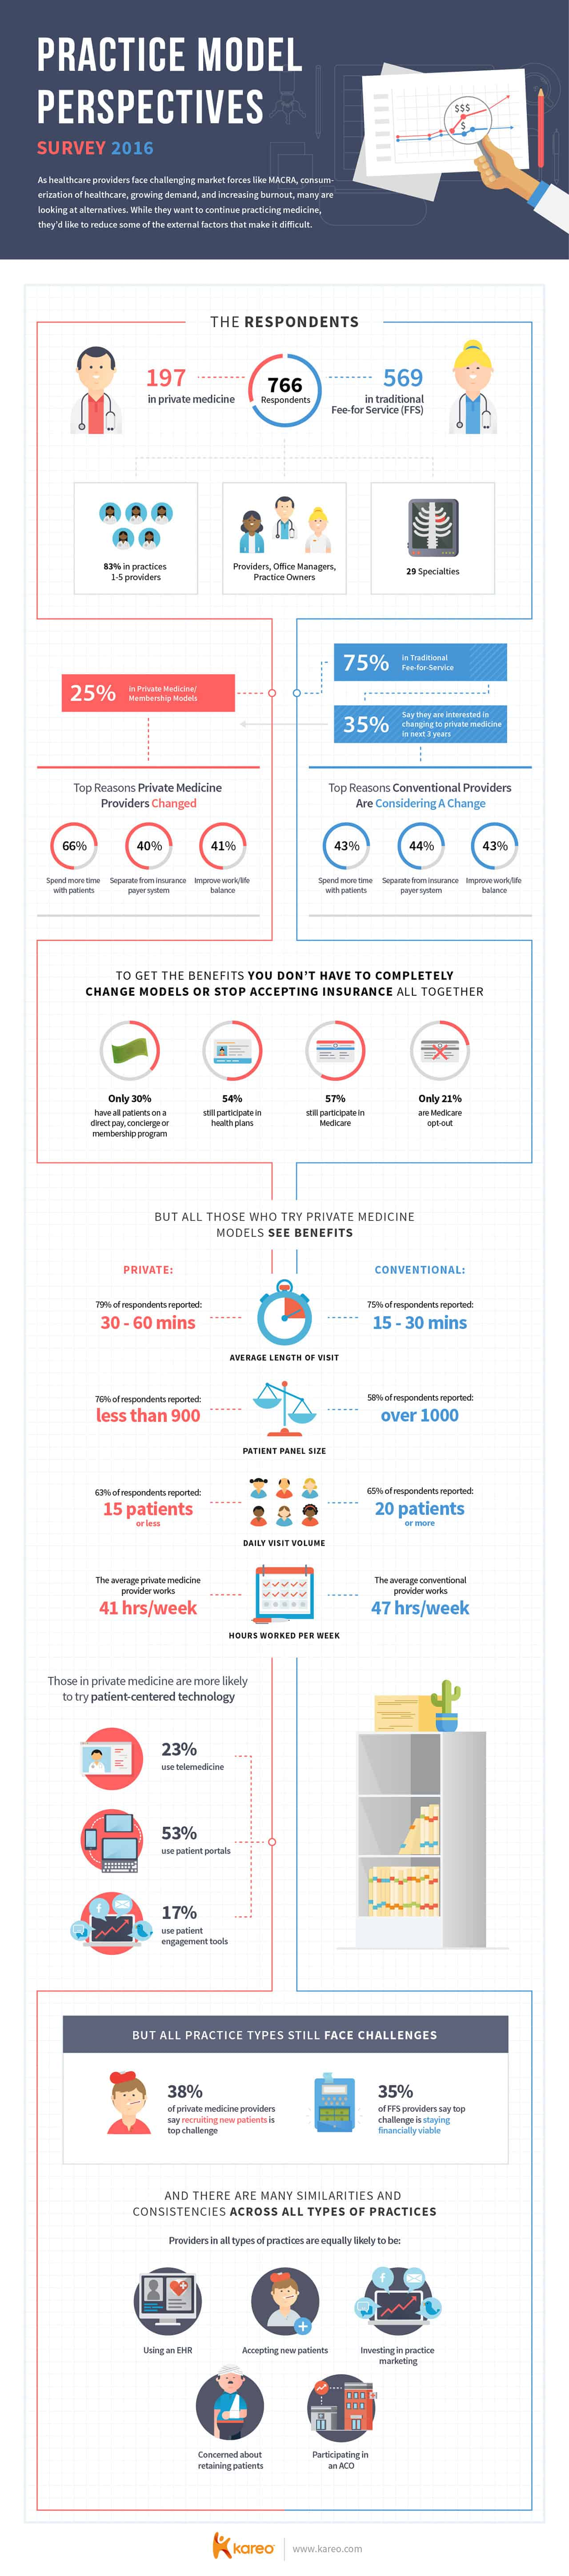 infographic-practice-model-perspectives-2016s2x